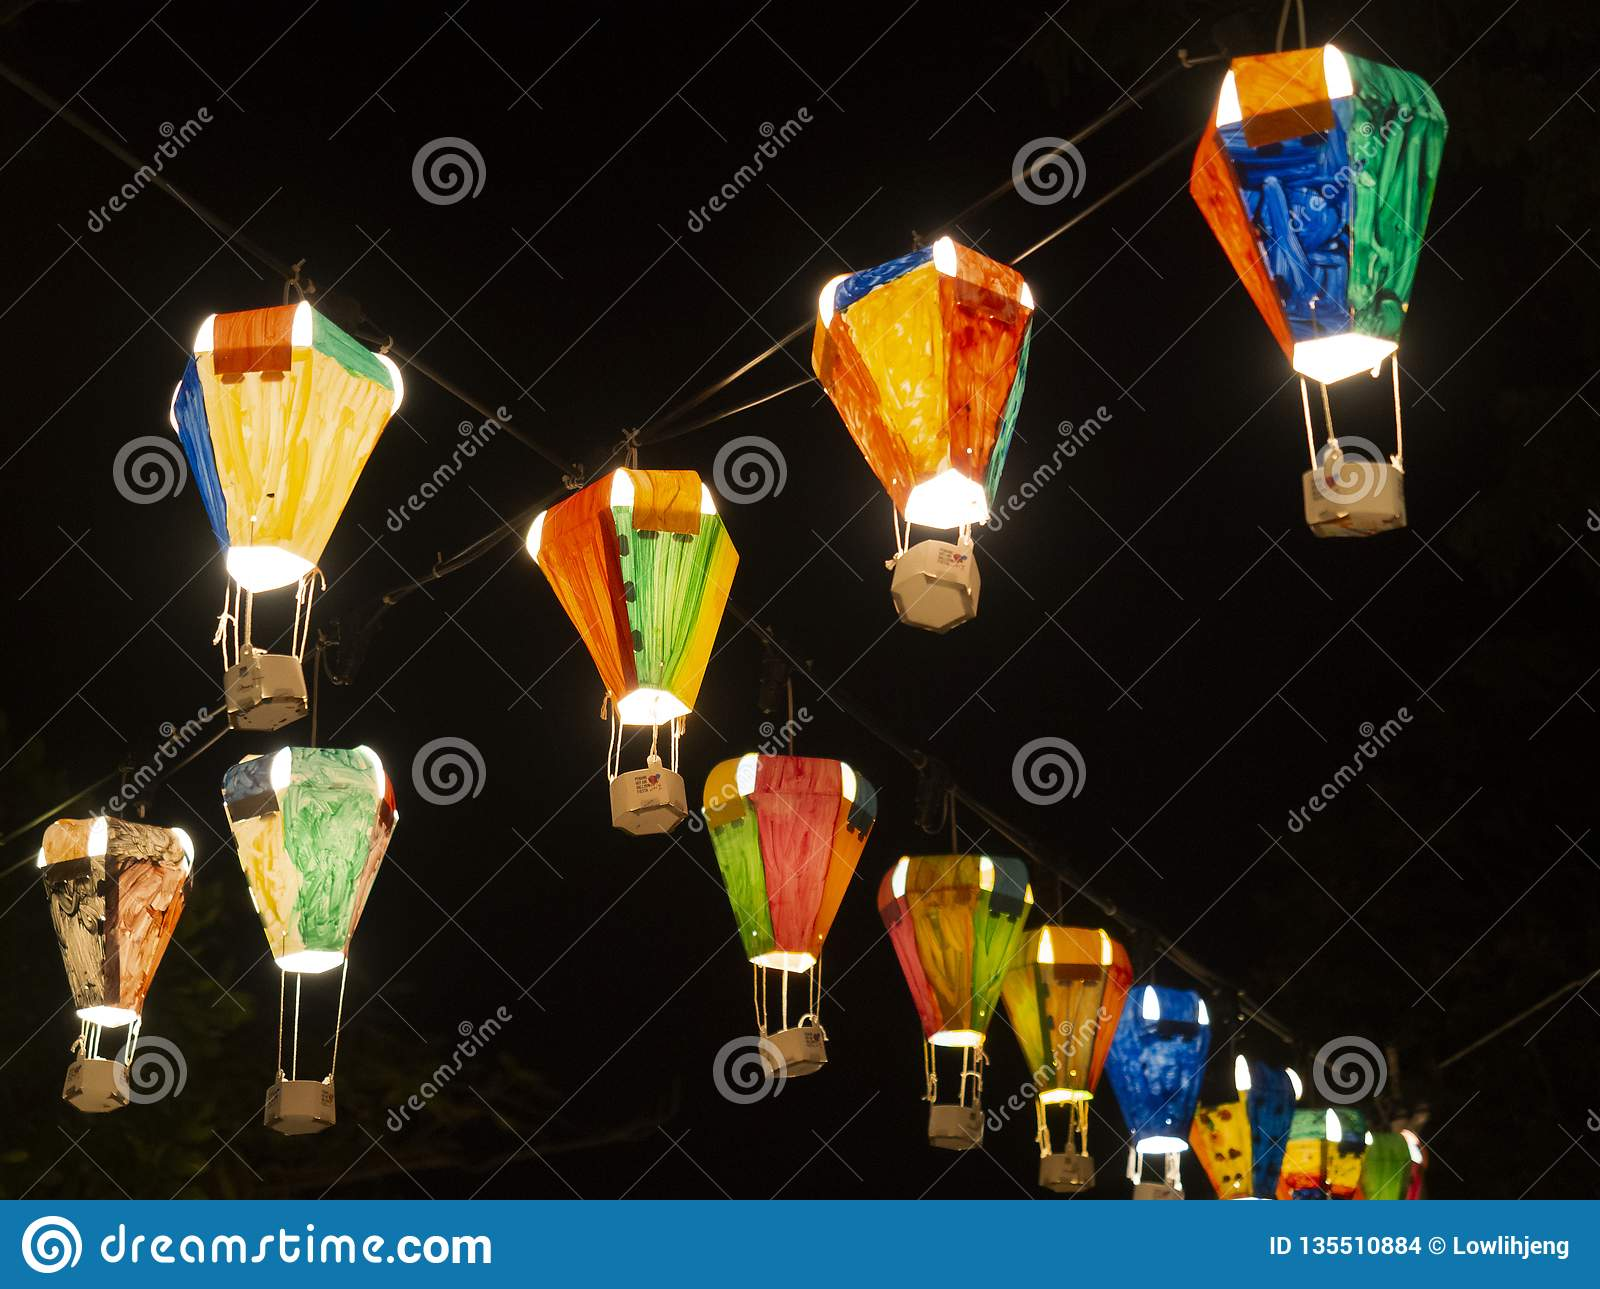 Hot air balloon festival, Lebuh Pantai, Georgetown, Penang